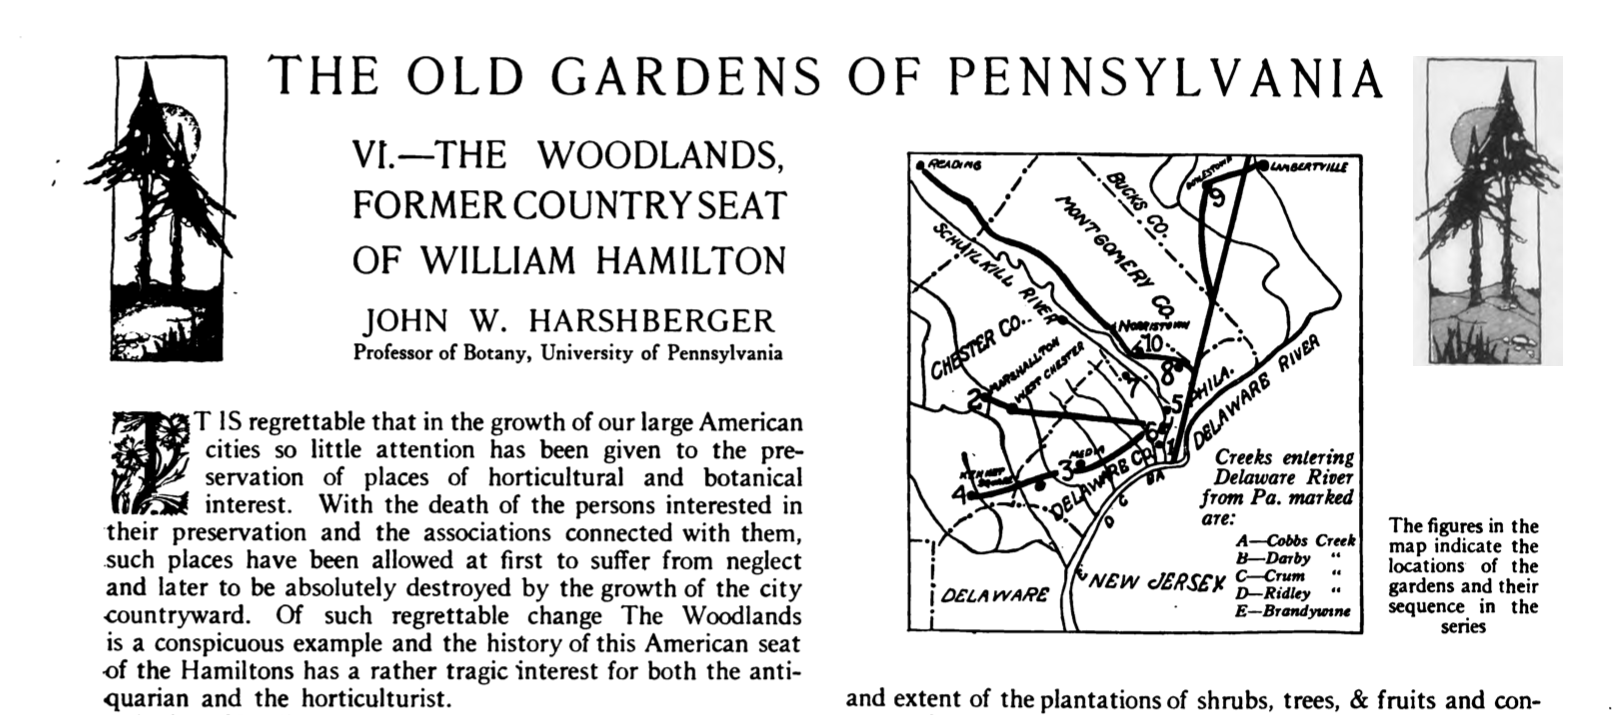 """John W. Harshberger, """"The Old Gardens of Pennsylvania. VI.—The Woodlands, Former Country Seat of William Hamilton,"""" The Garden Magazine, vol. 33, no. 2 (April 1921), p. 130-133. Read the full article here."""